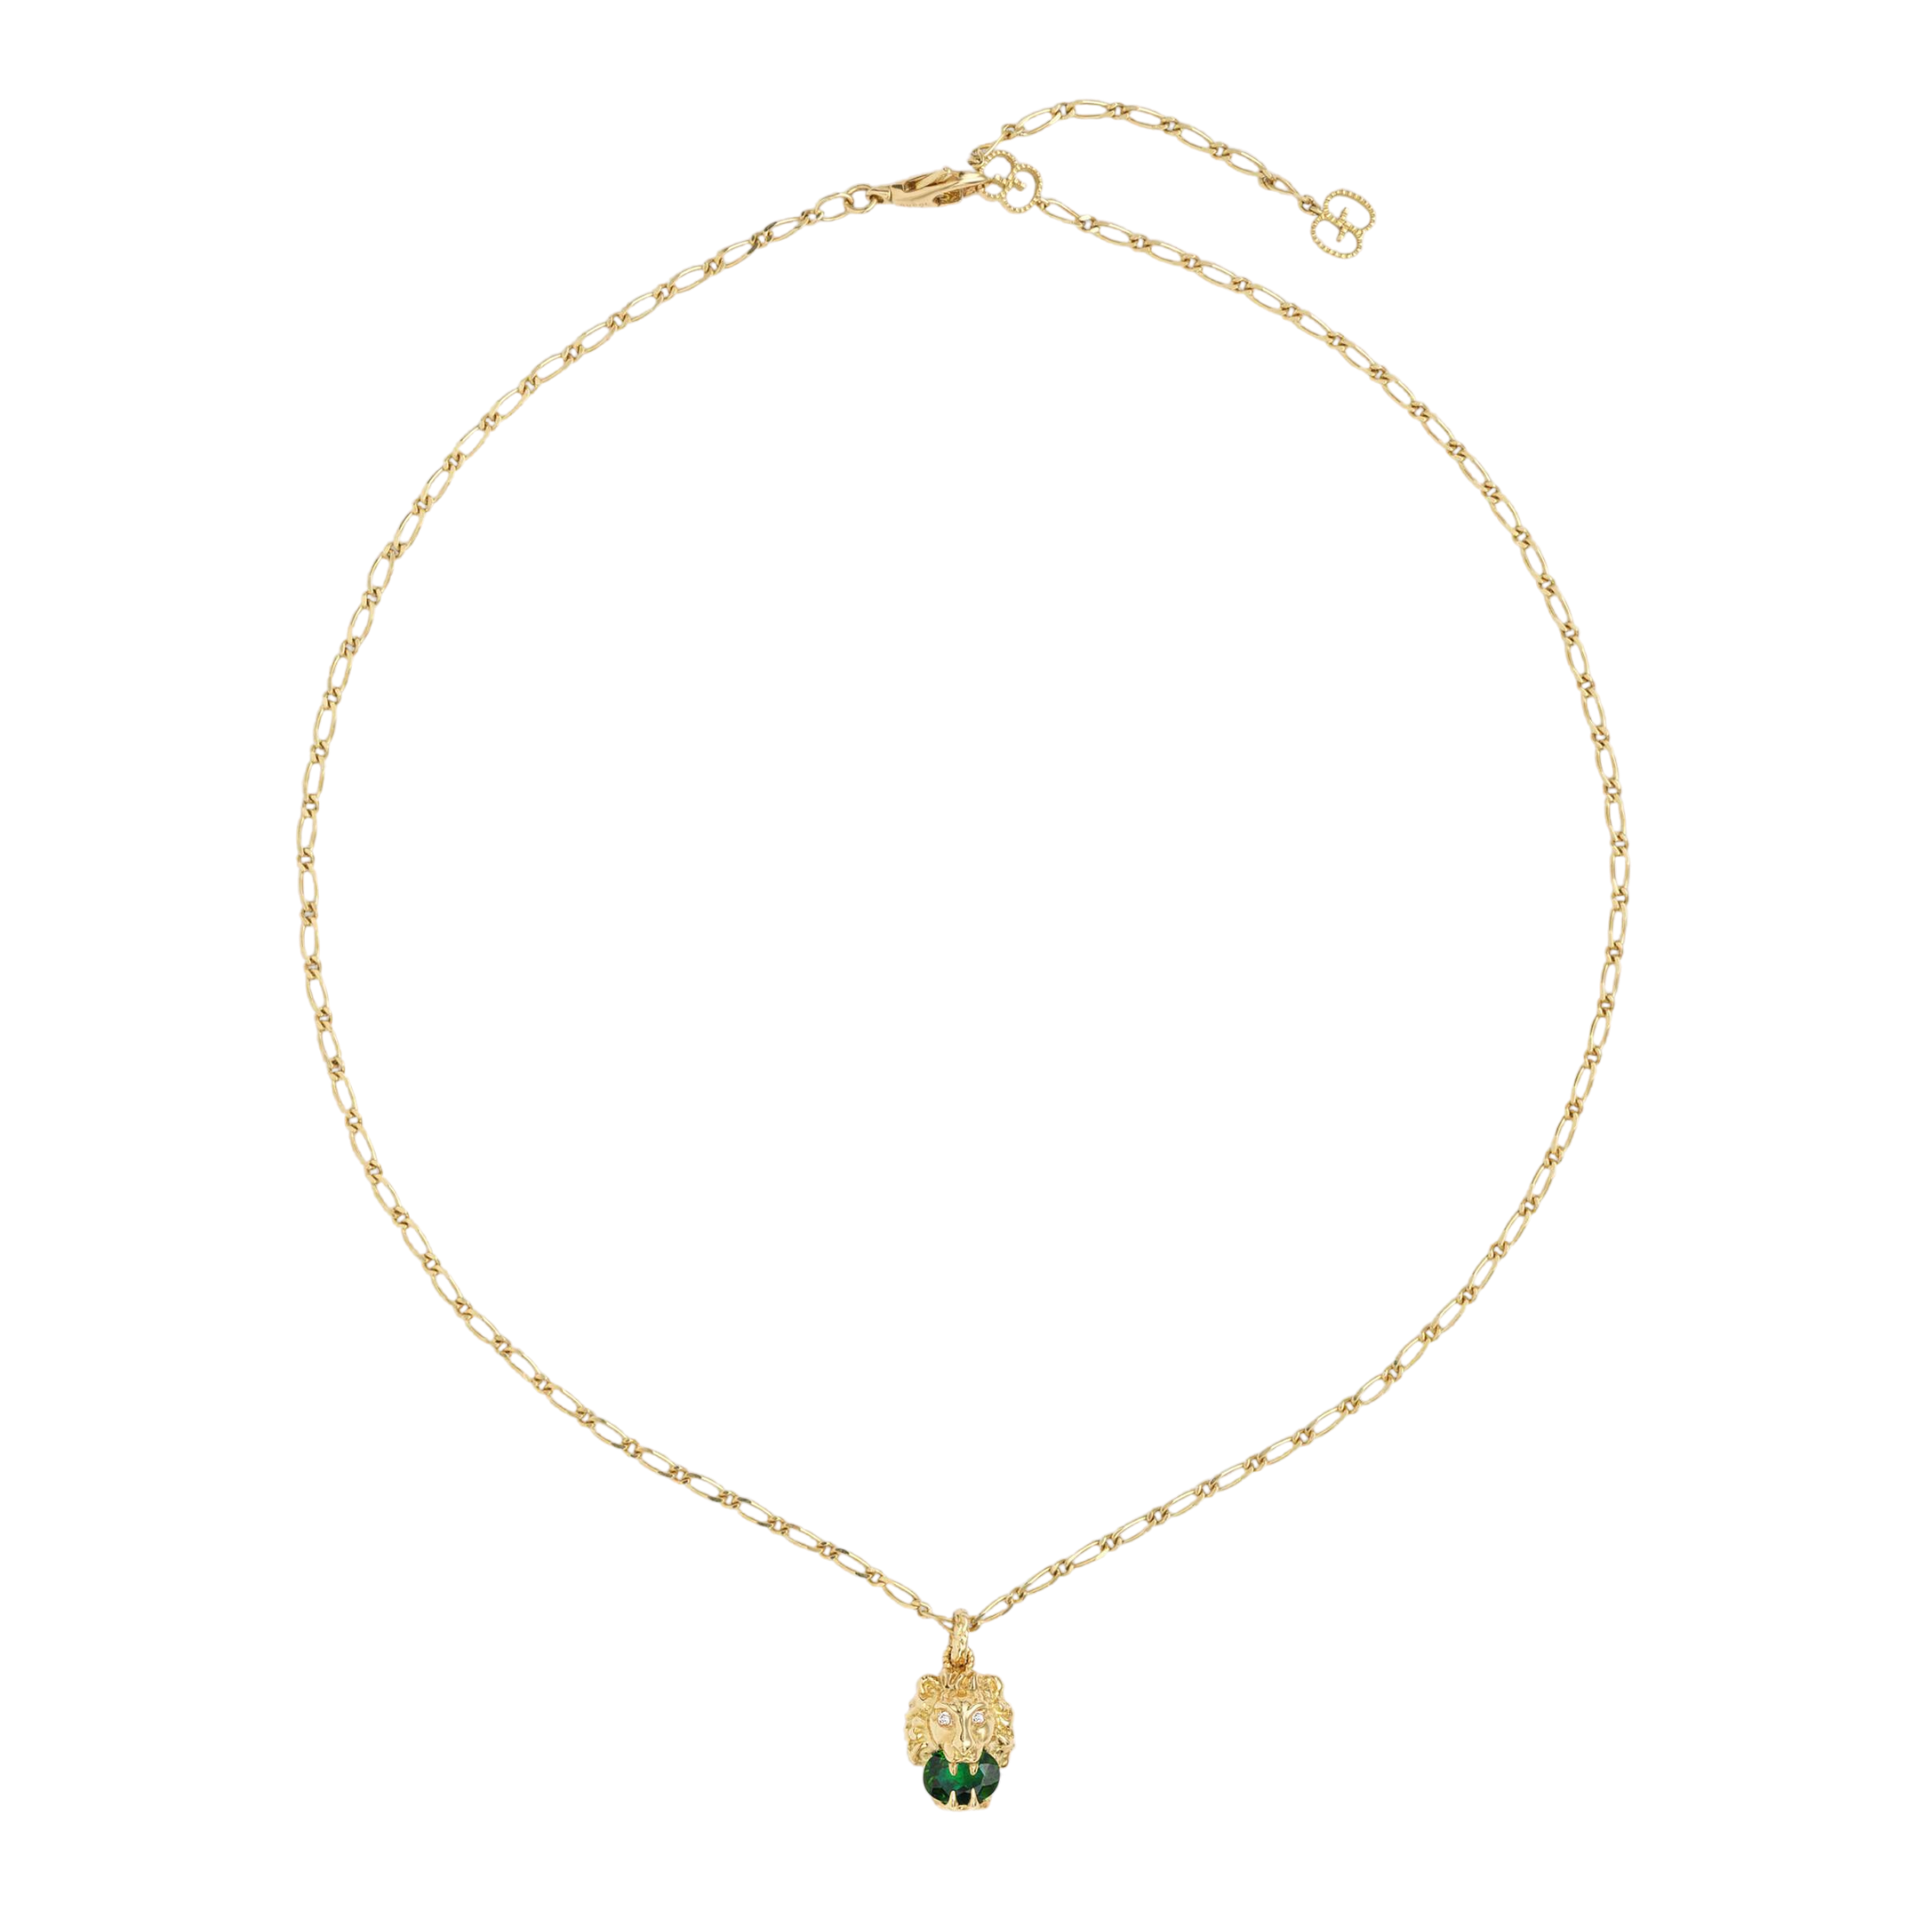 Lionhead Necklace in 18k Yellow Gold with Green Diopside Diamonds - Orsini Jewellers NZ